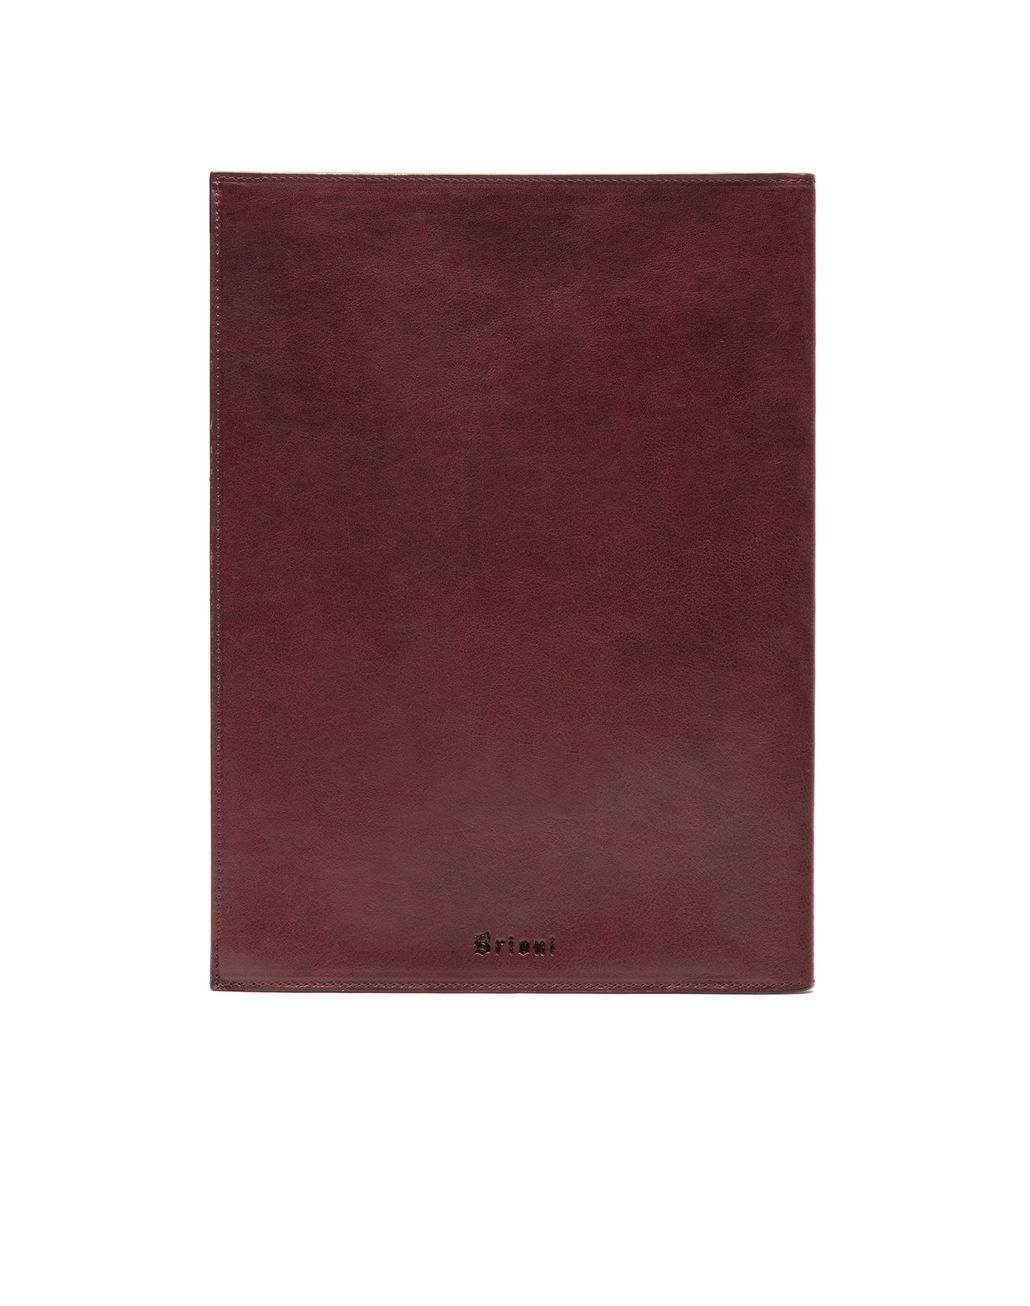 BRIONI Burgundy Zip Around Document Holder Leather Goods U d